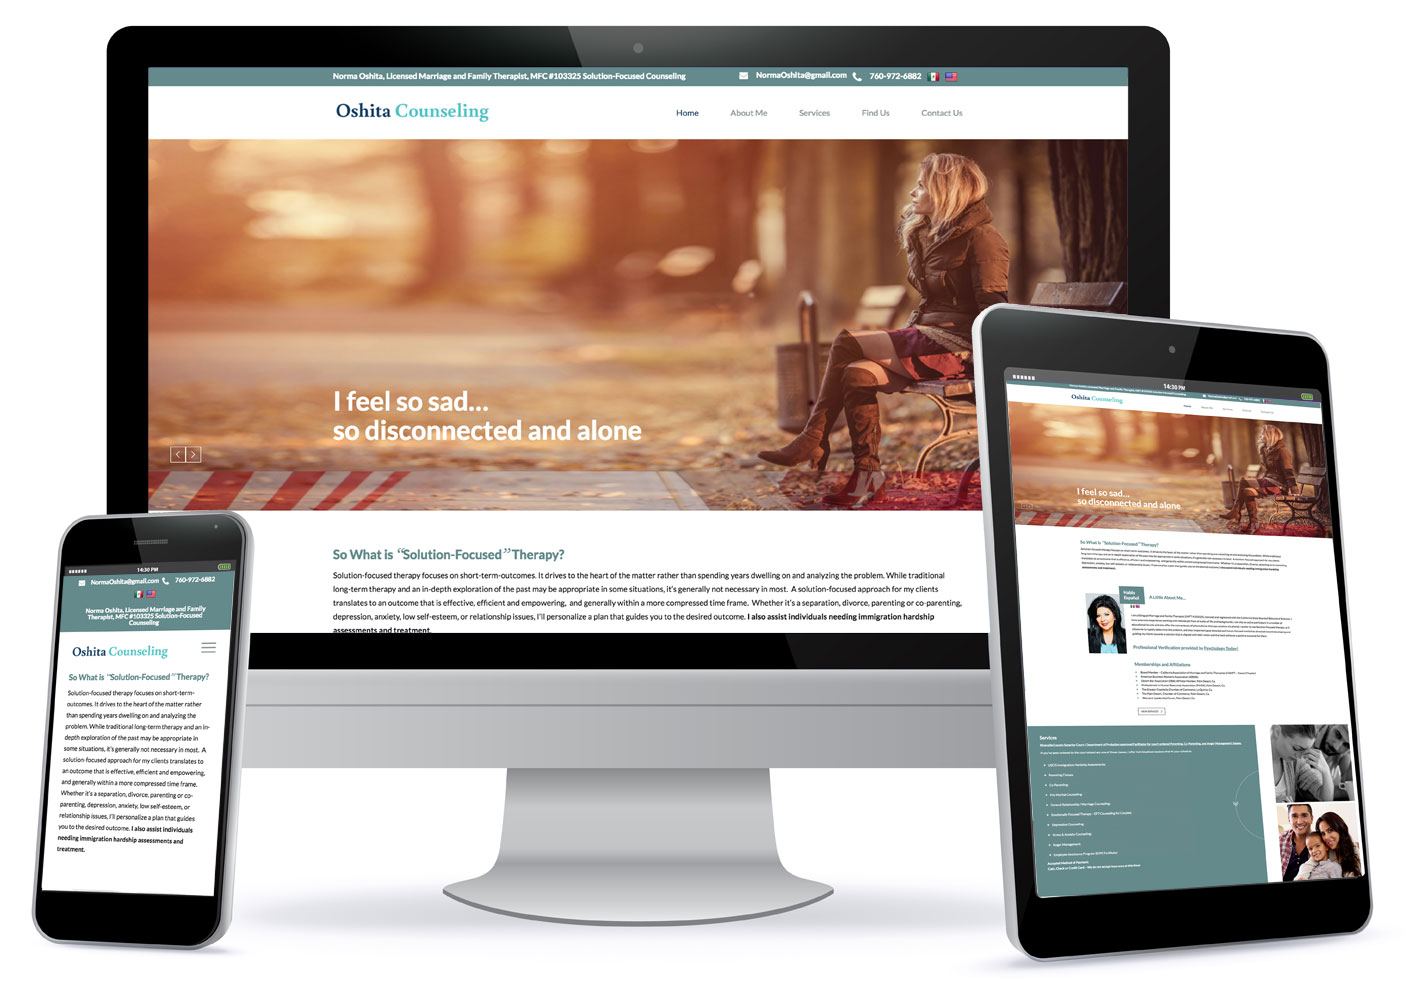 Photo of custom one page website design for Oshita Counseling